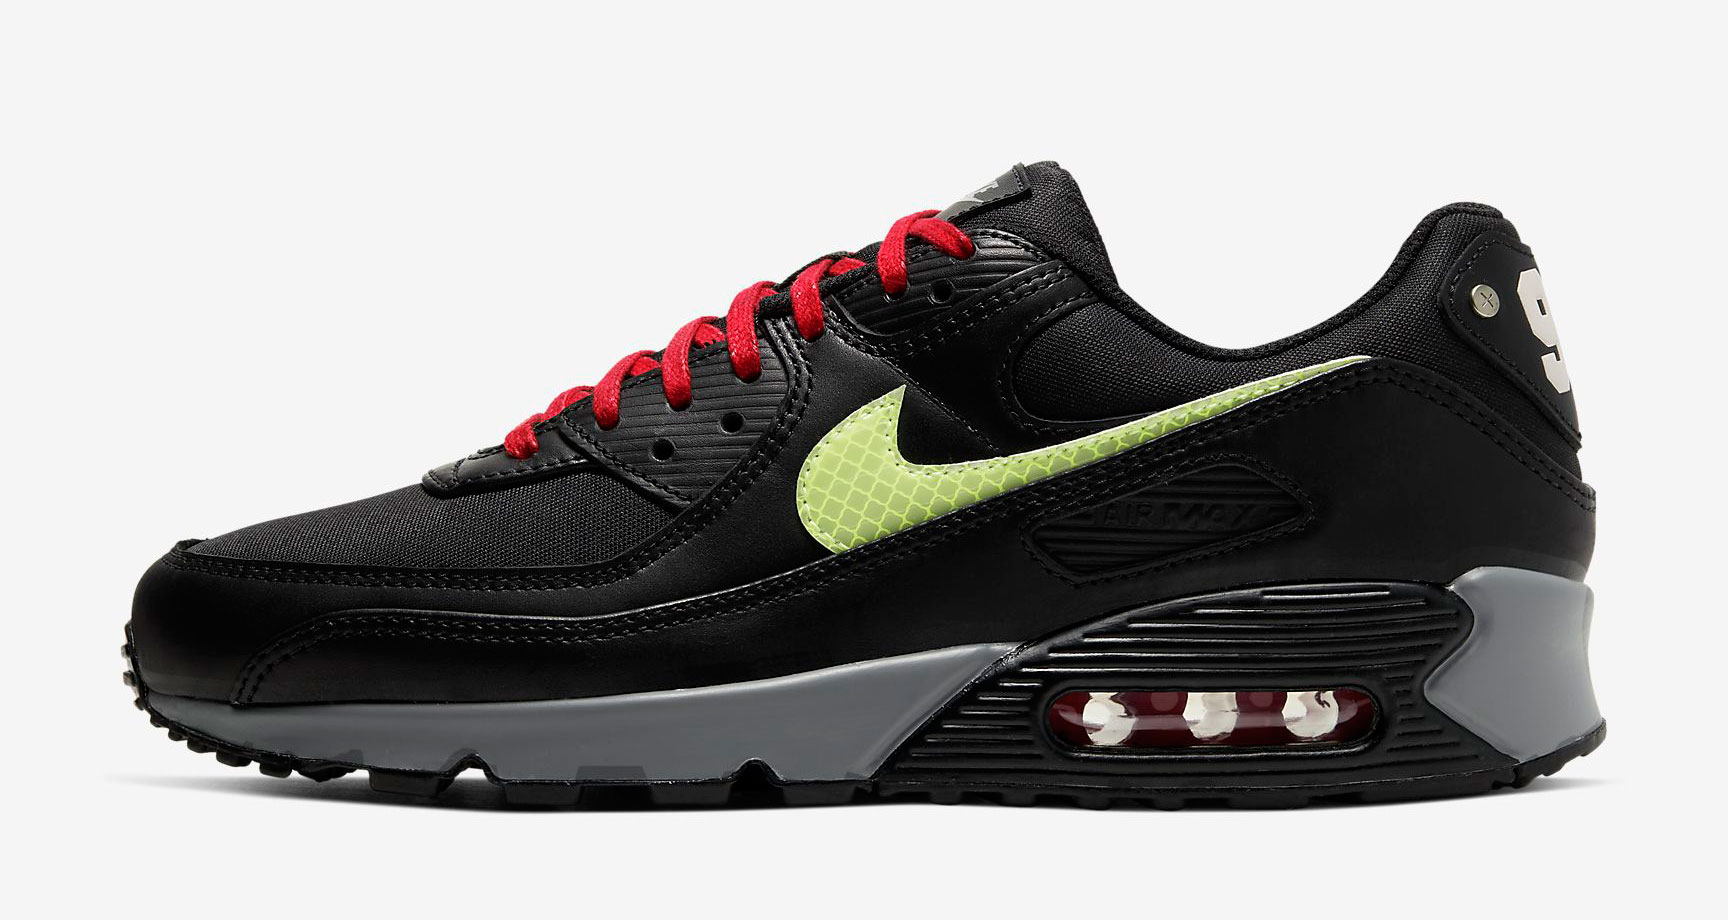 nike-air-max-90-fdny-release-date